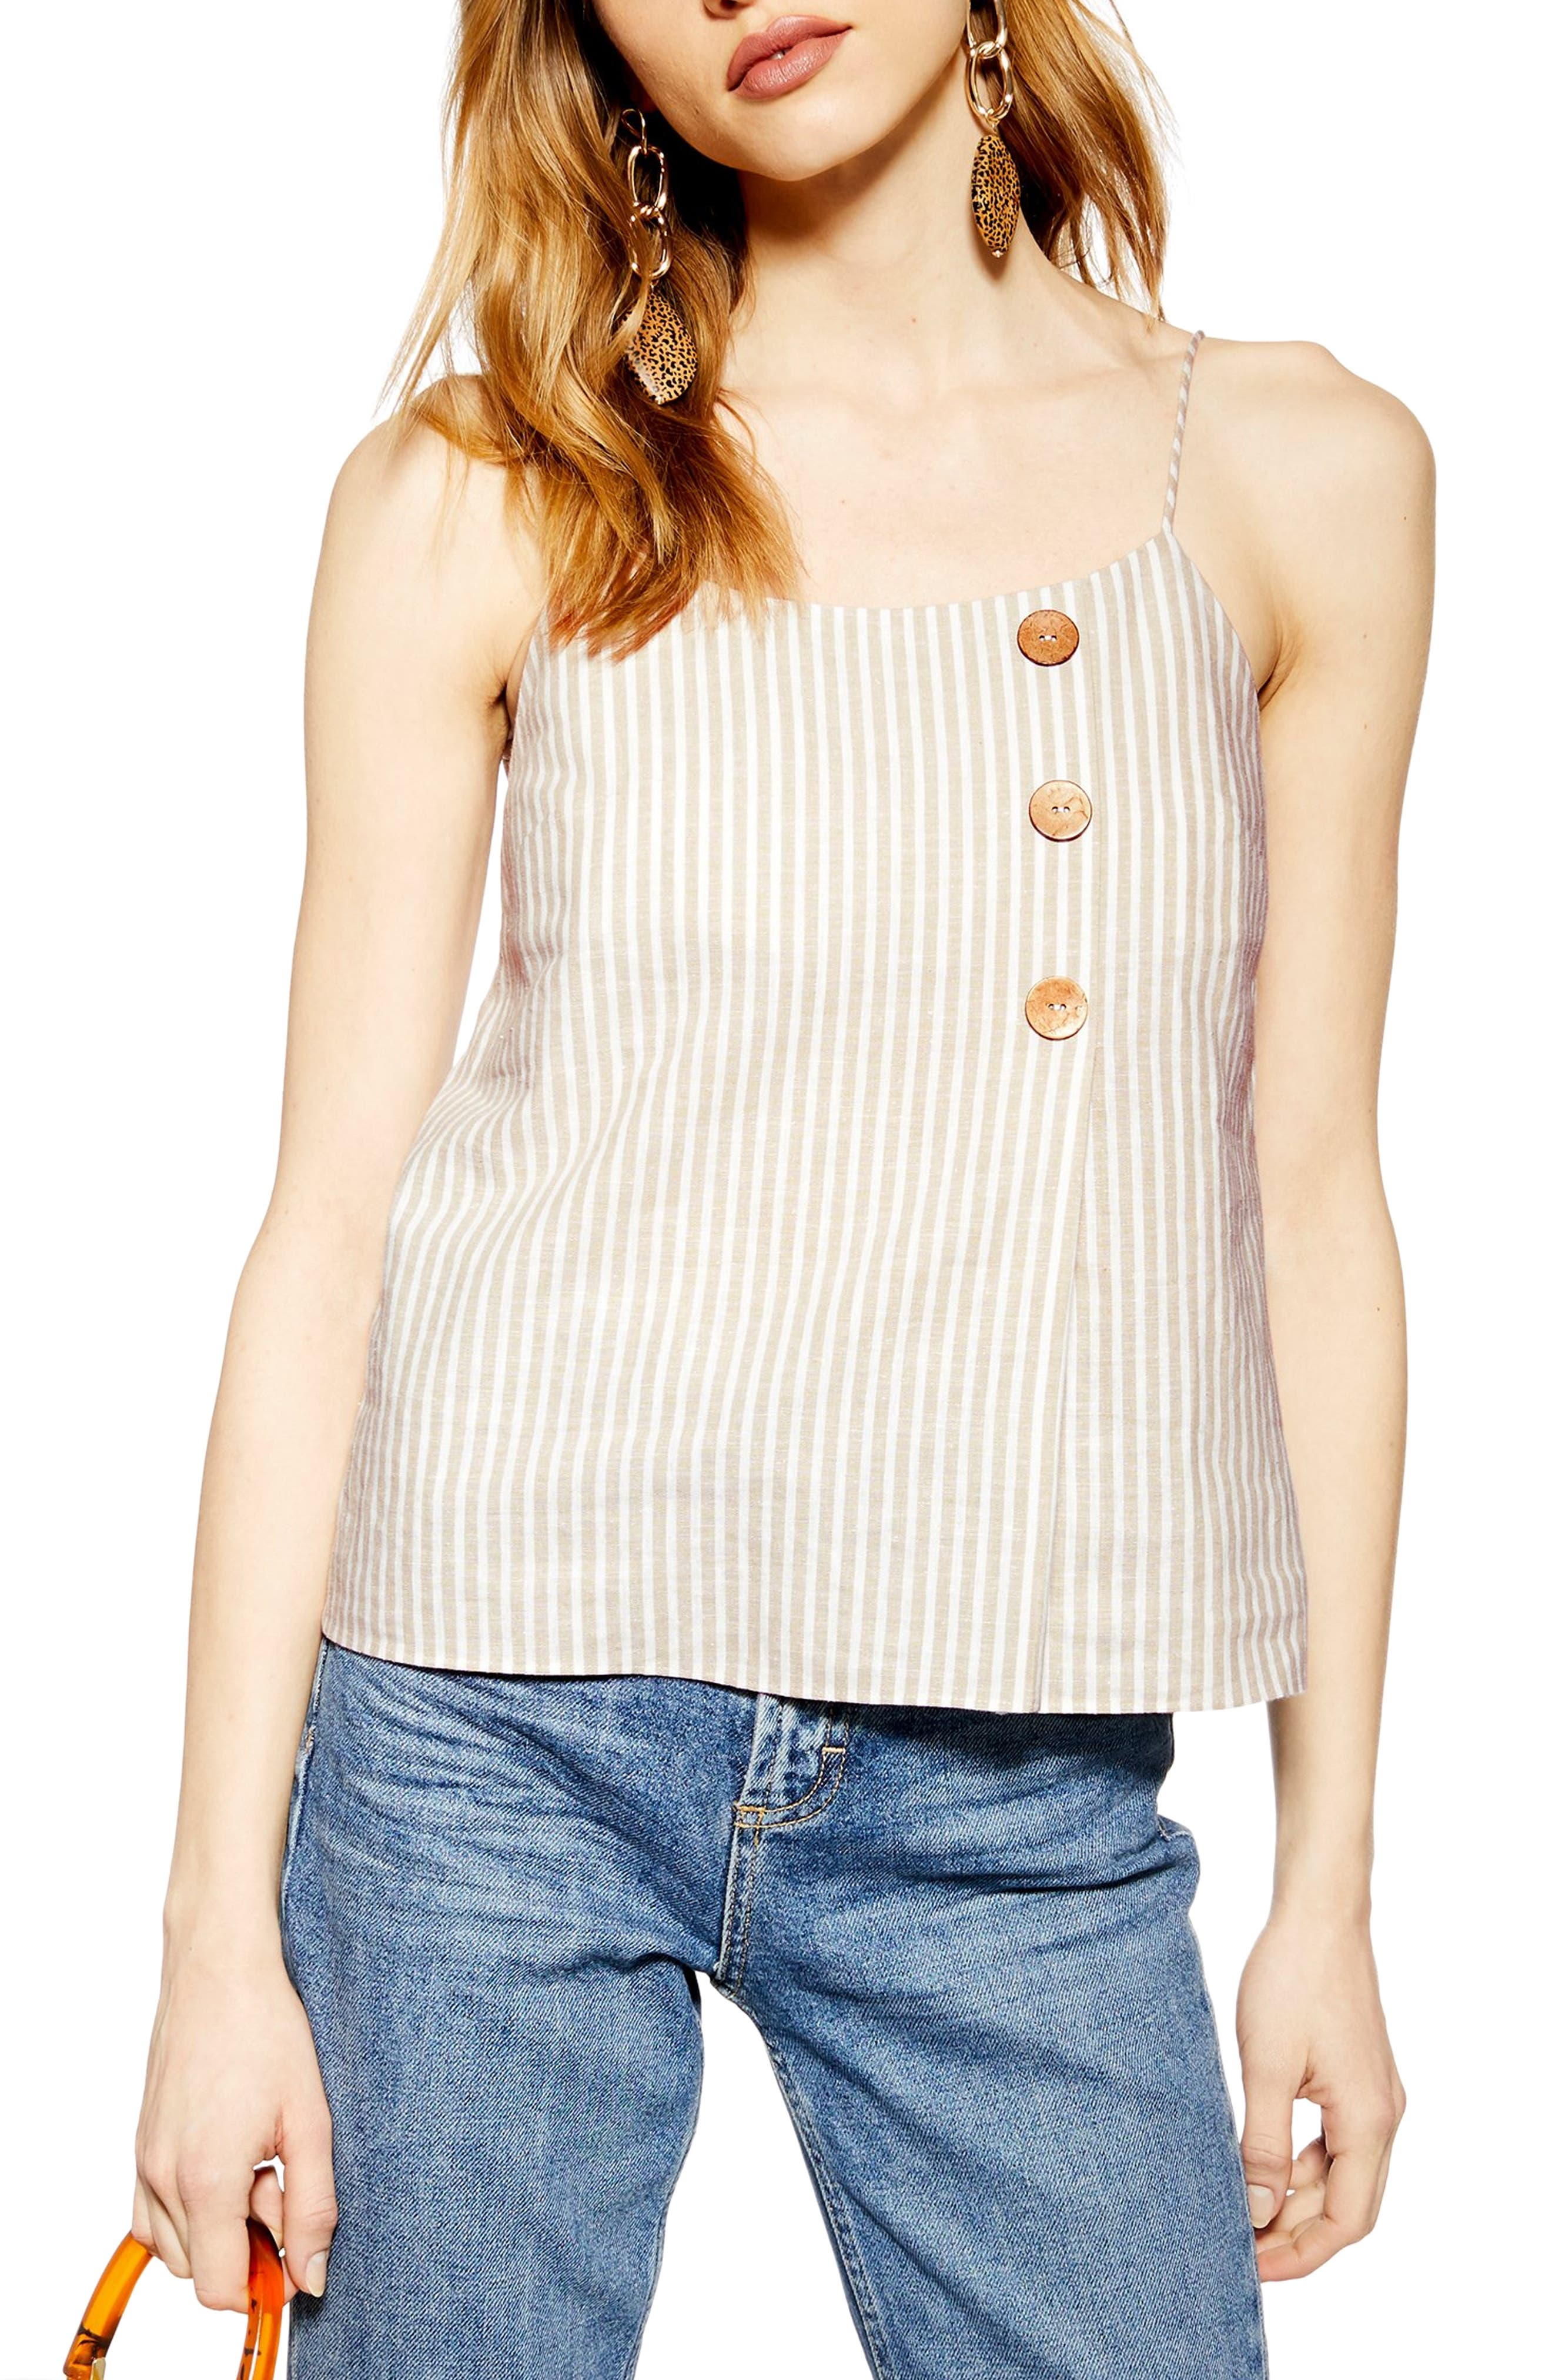 Topshop Stripe Button Wrap Camisole Top, US (fits like 10-12) - Beige